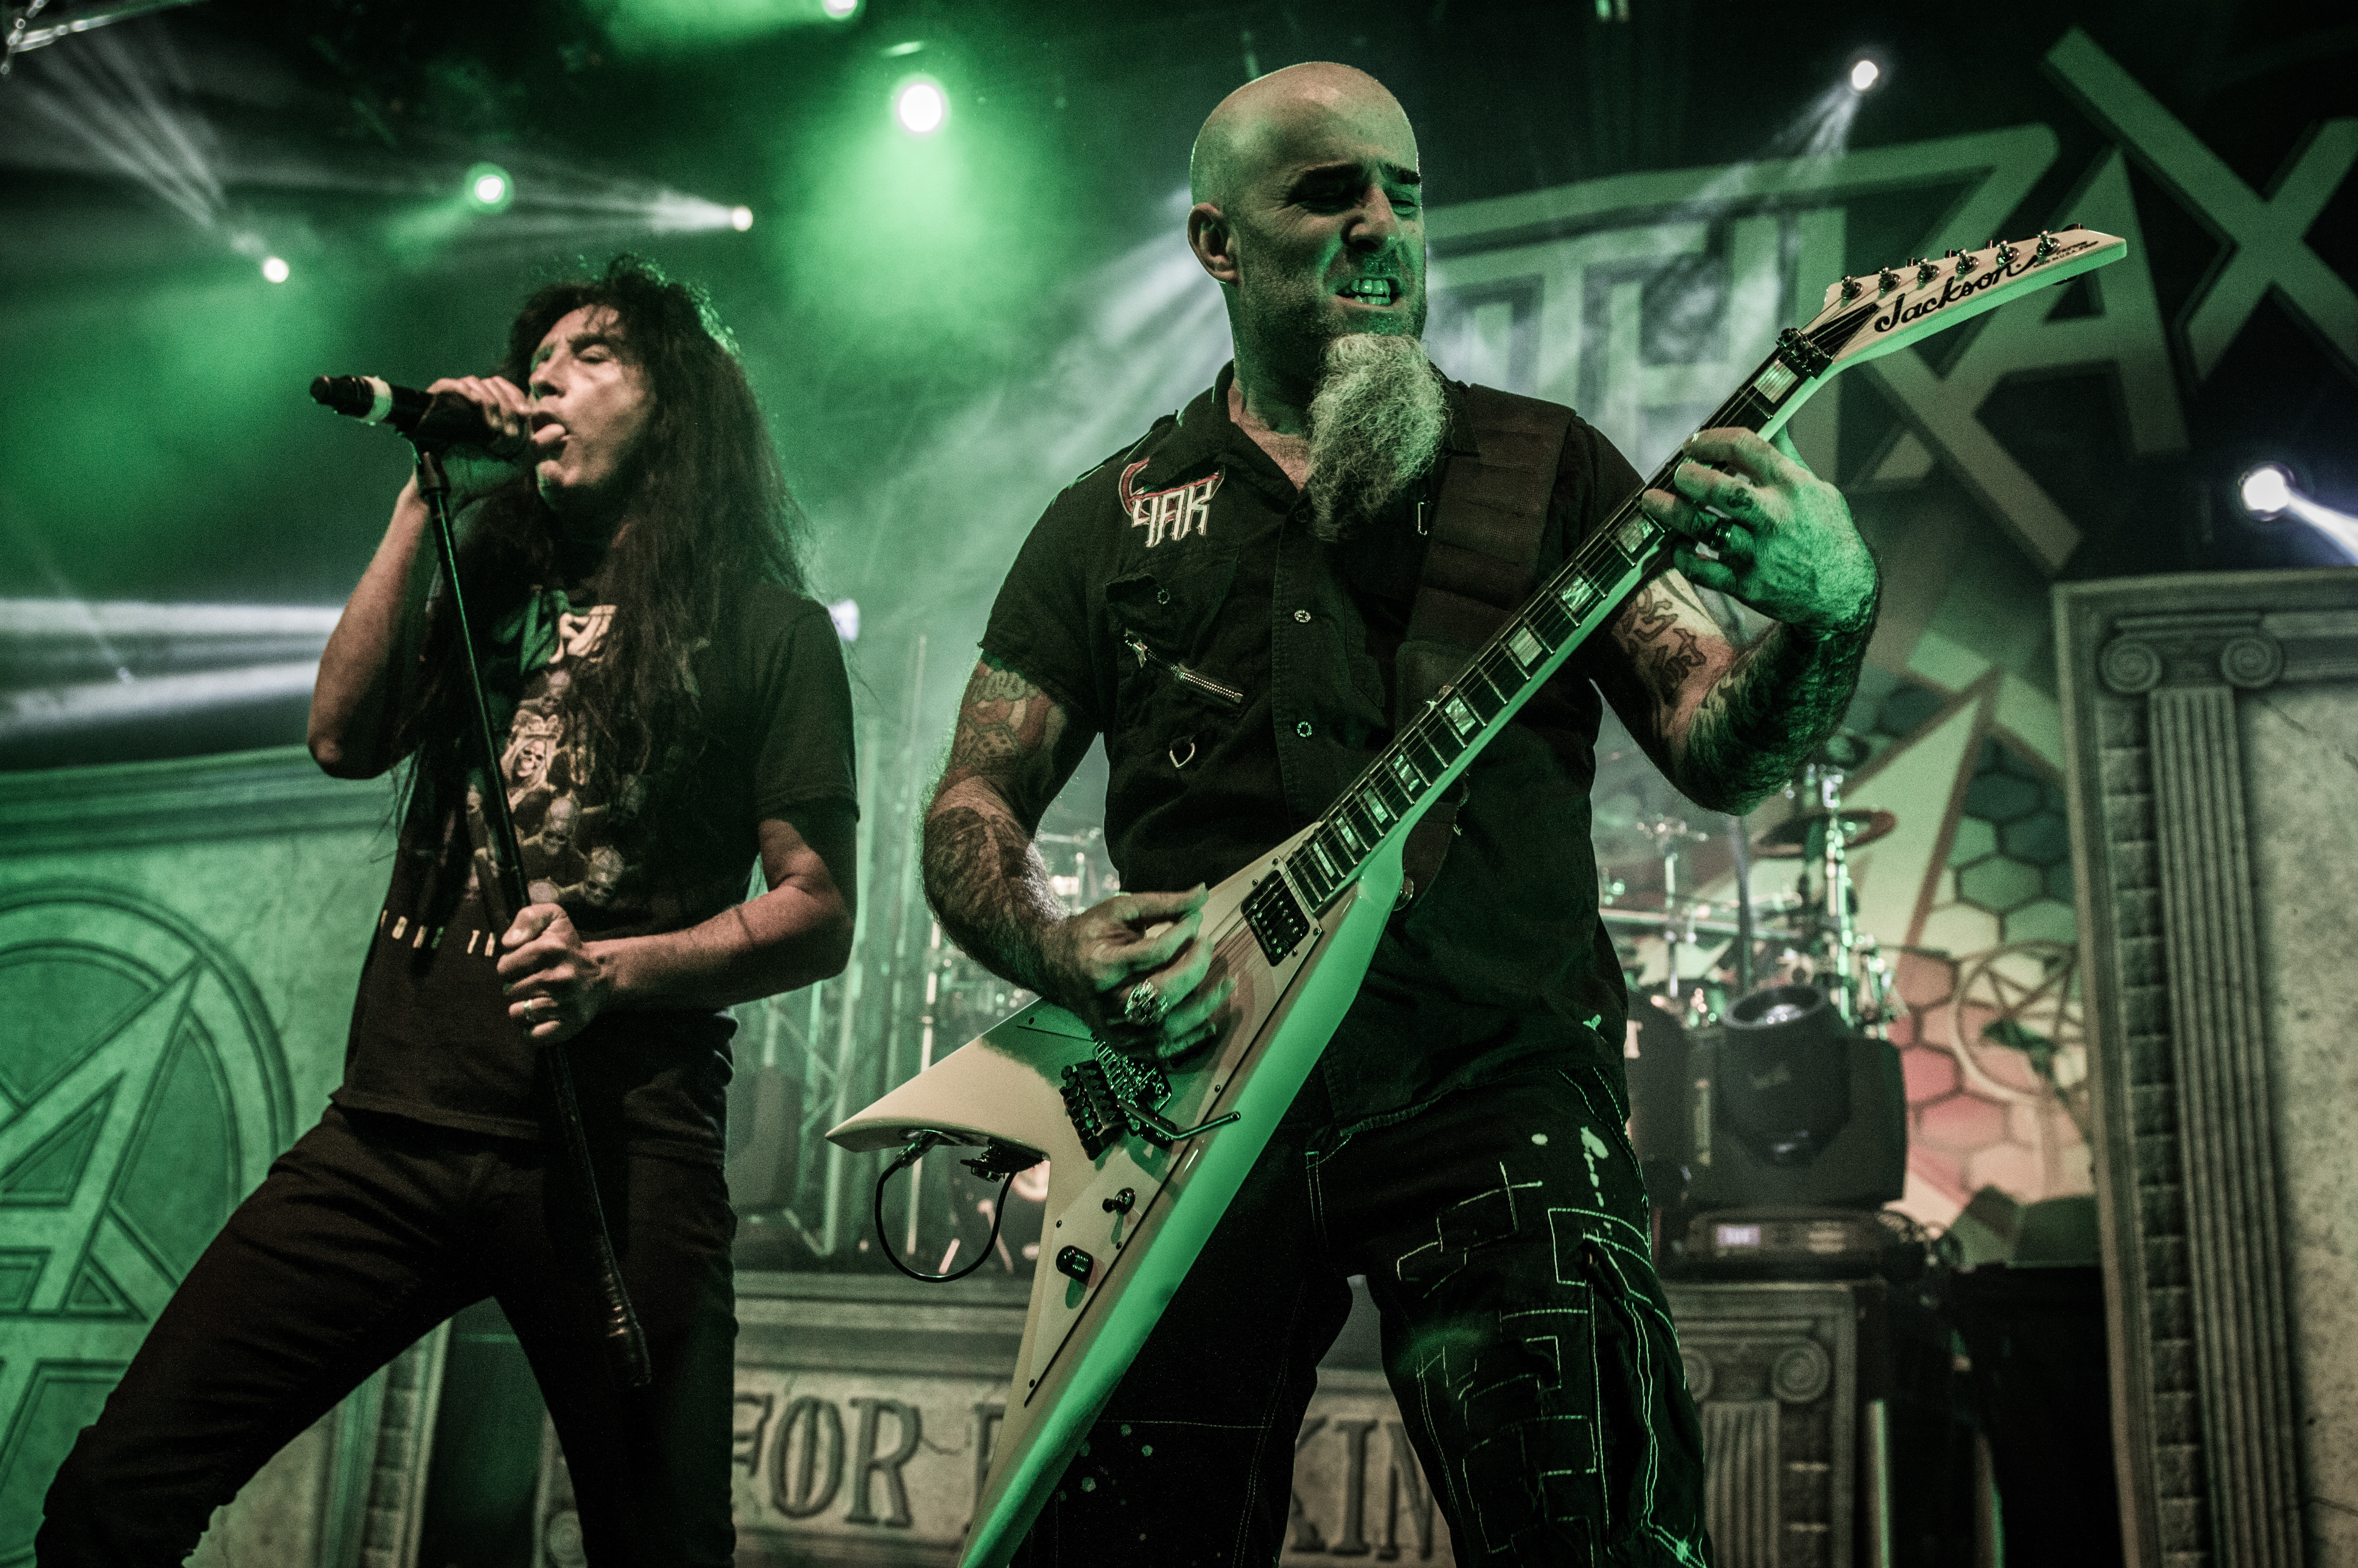 anthrax band full concert - photo #26